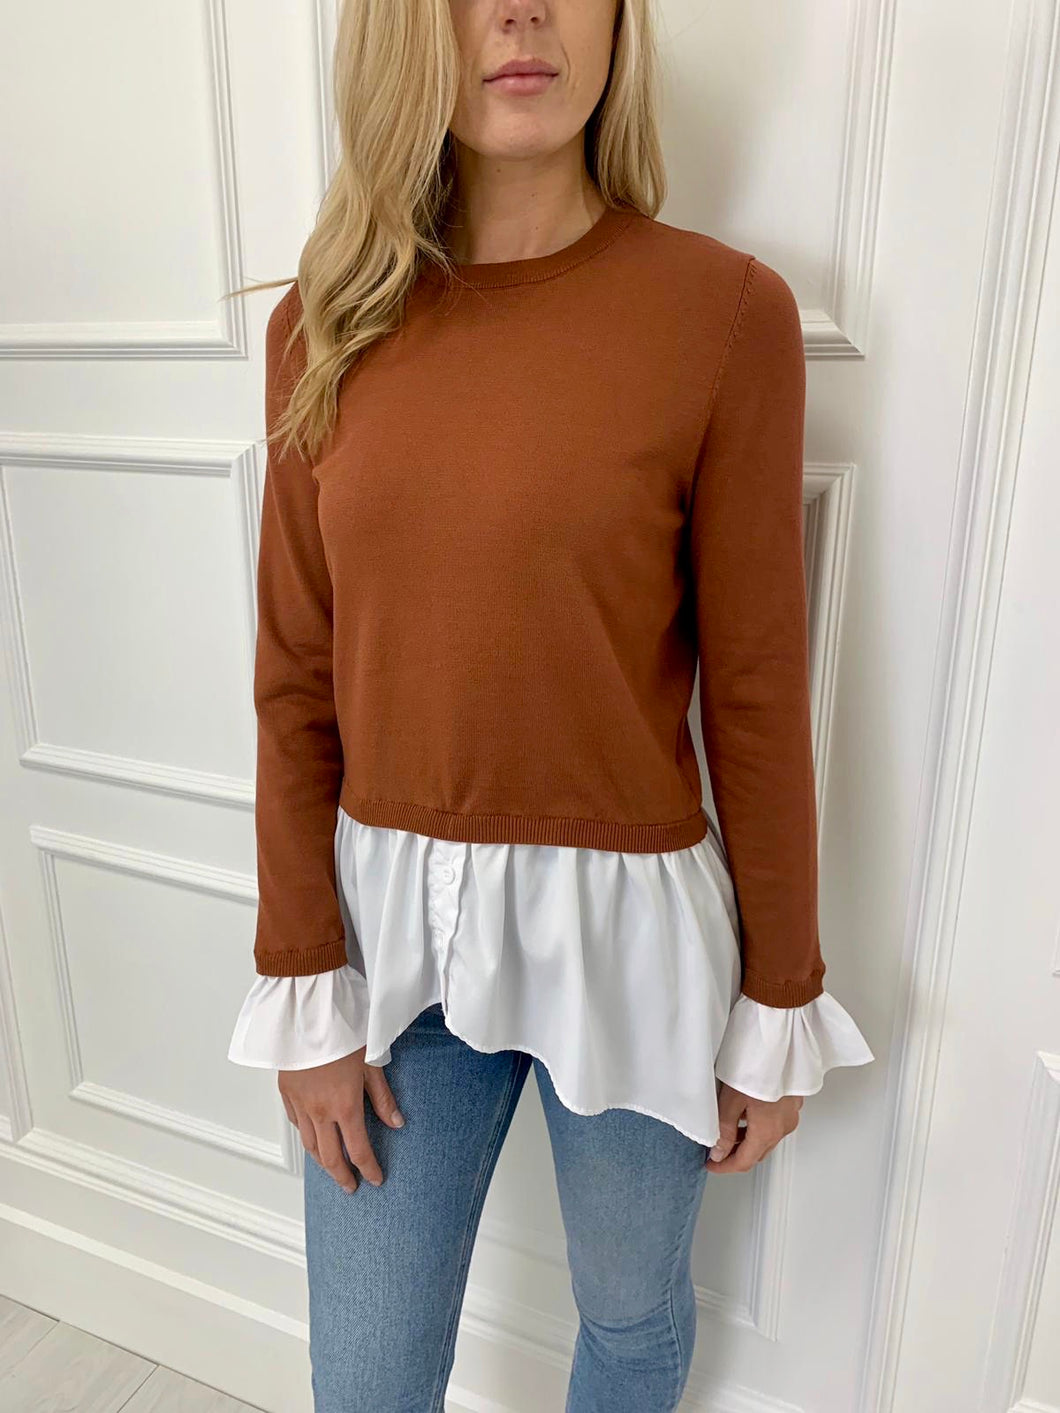 The Robyn Shirt and Knit Combo in Rust